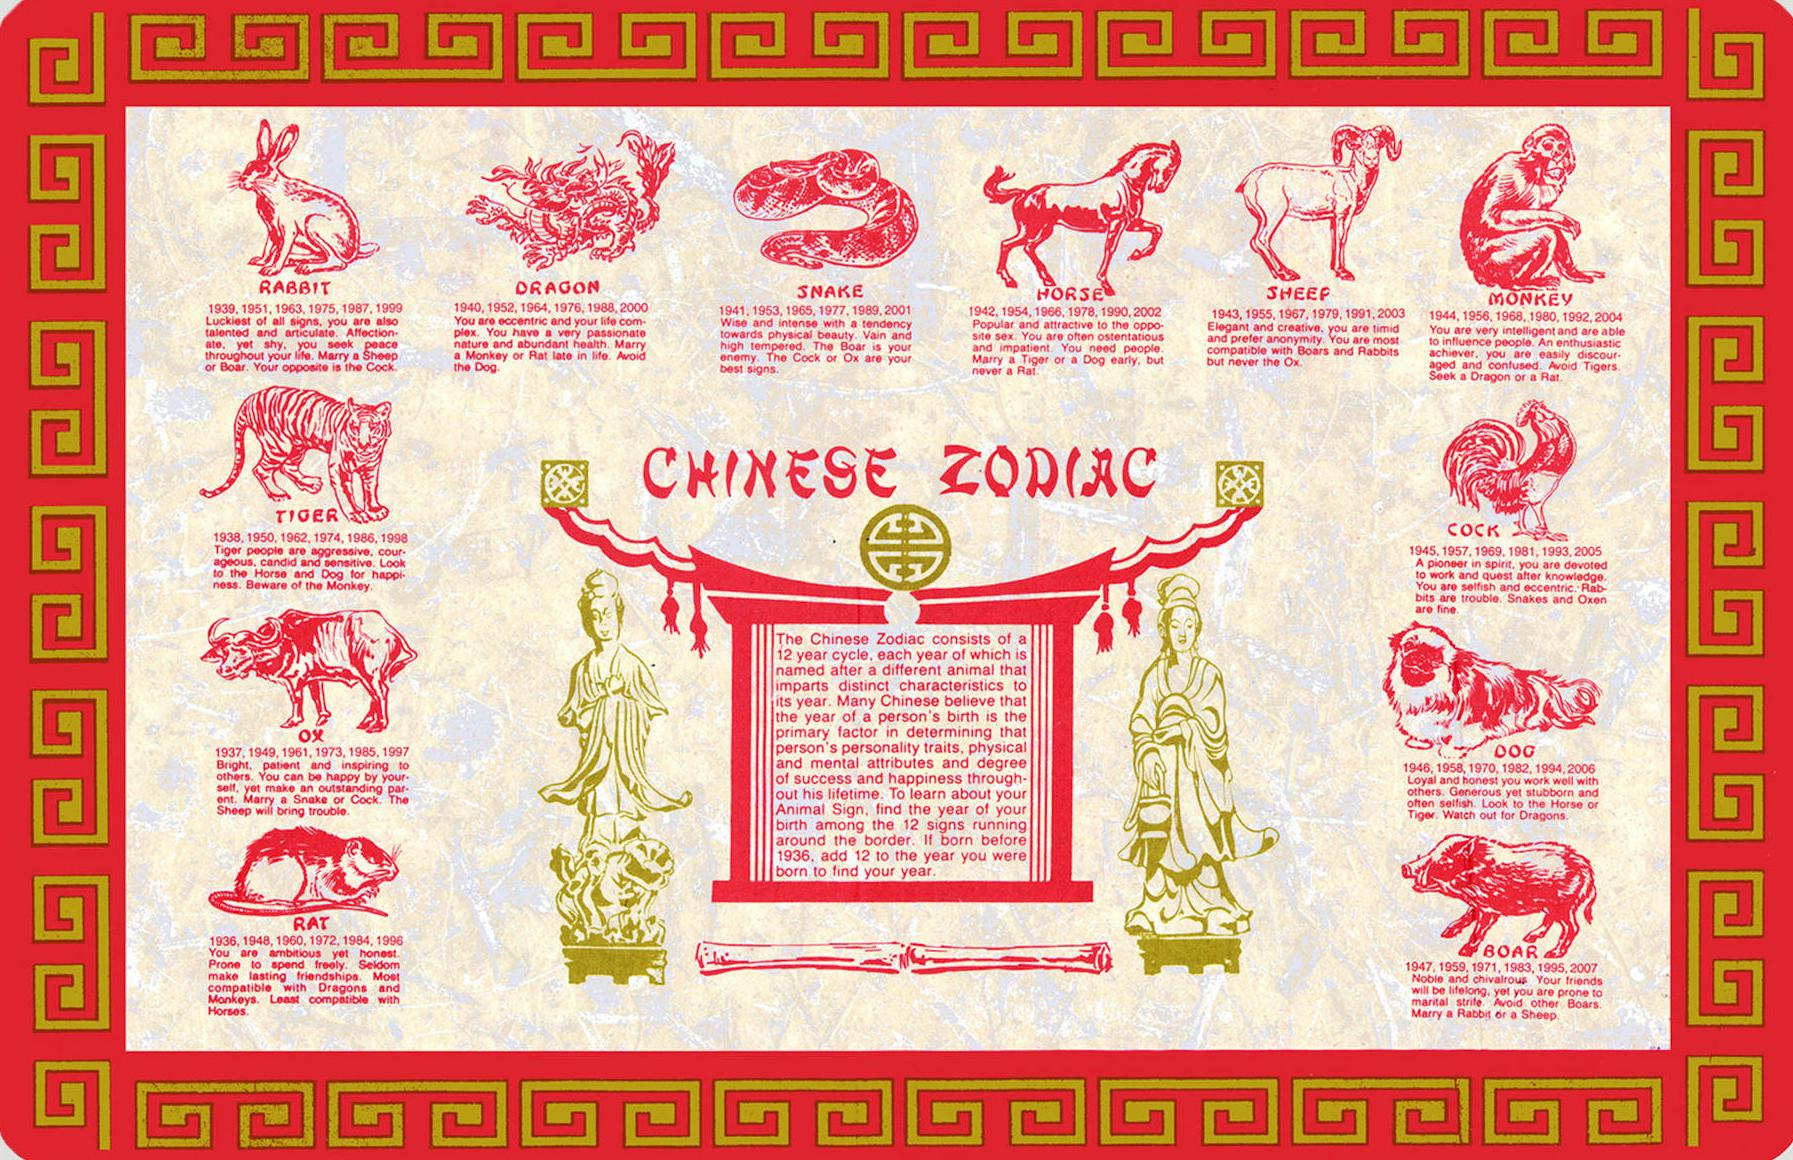 The Chinese Zodiac Calendar